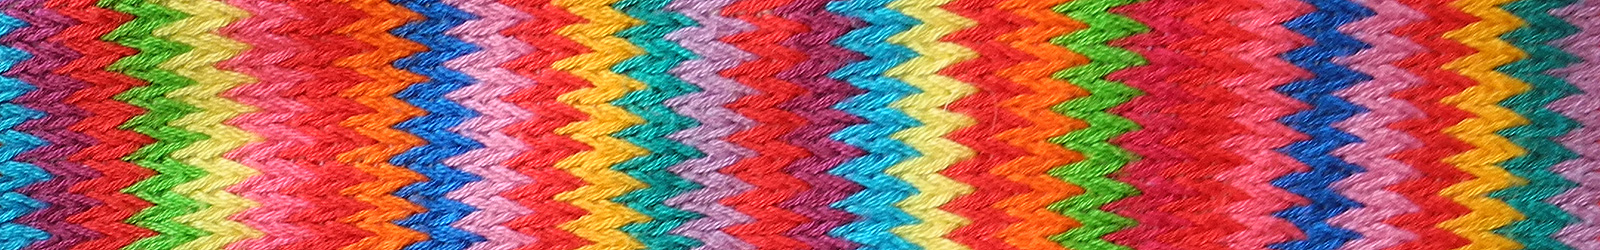 Multicolored textile with zigzag pattern